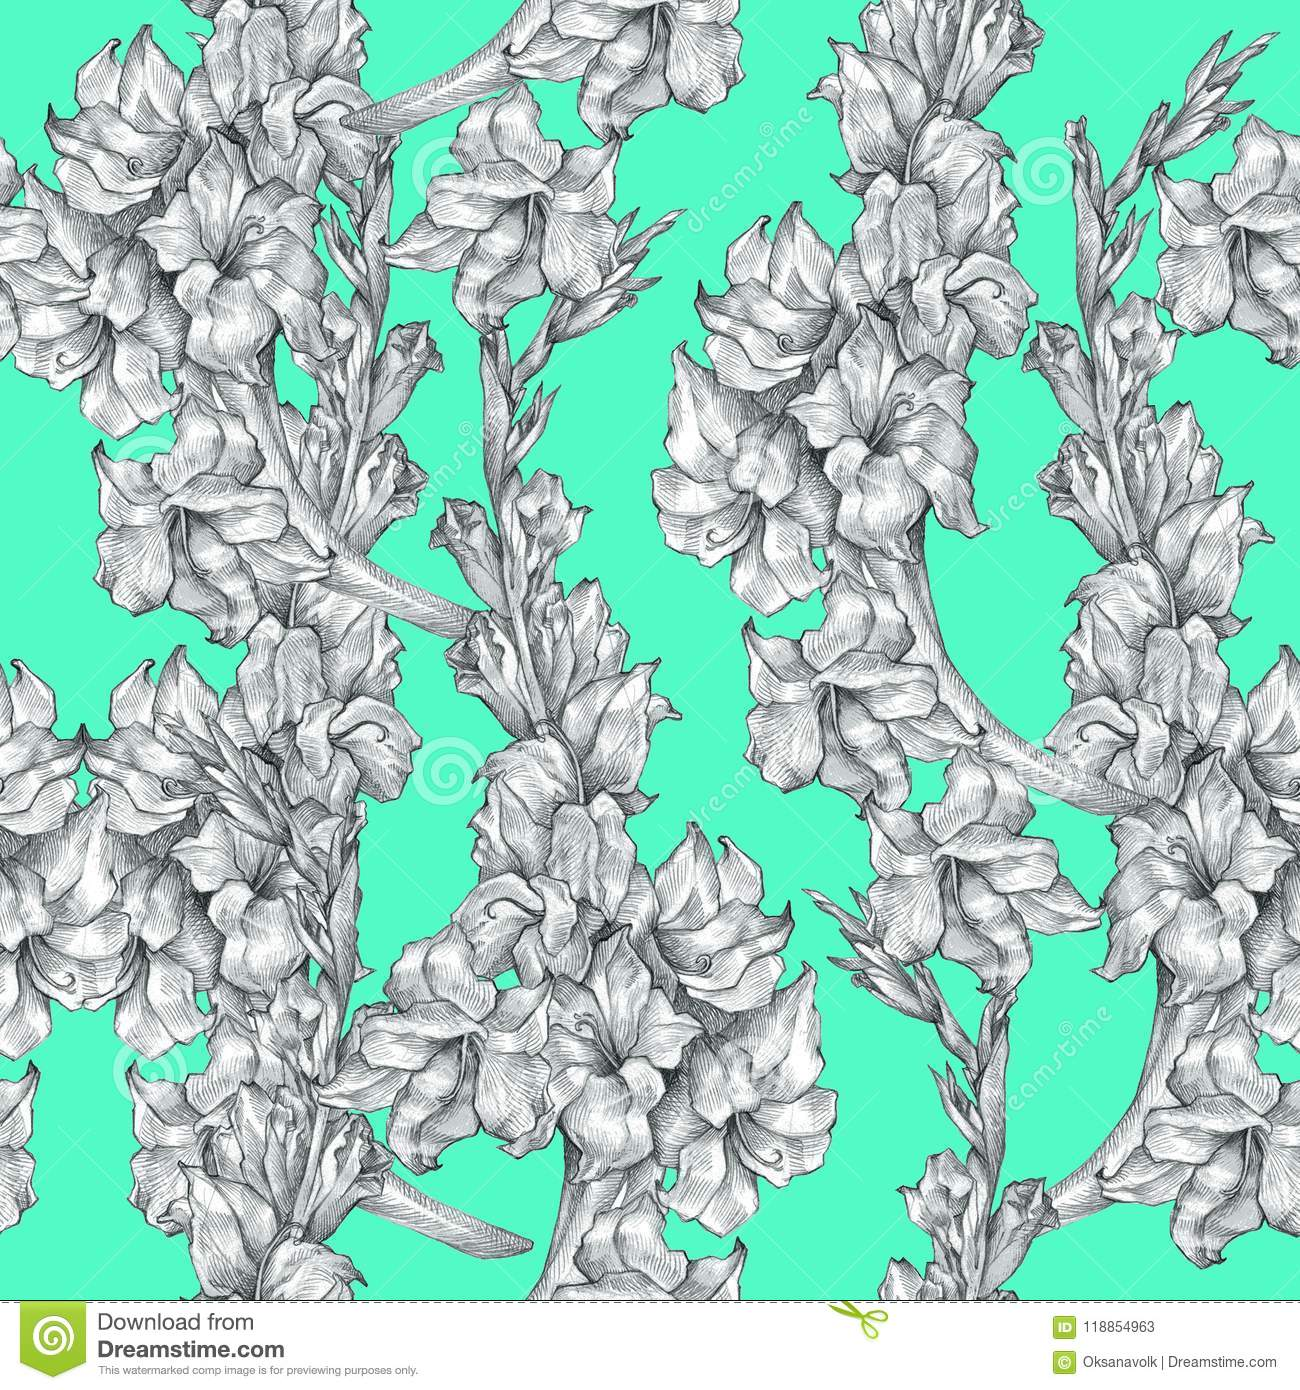 Botanical floral flower pencil drawing sketch seamless ornate pattern texture on bright blue background for invitations